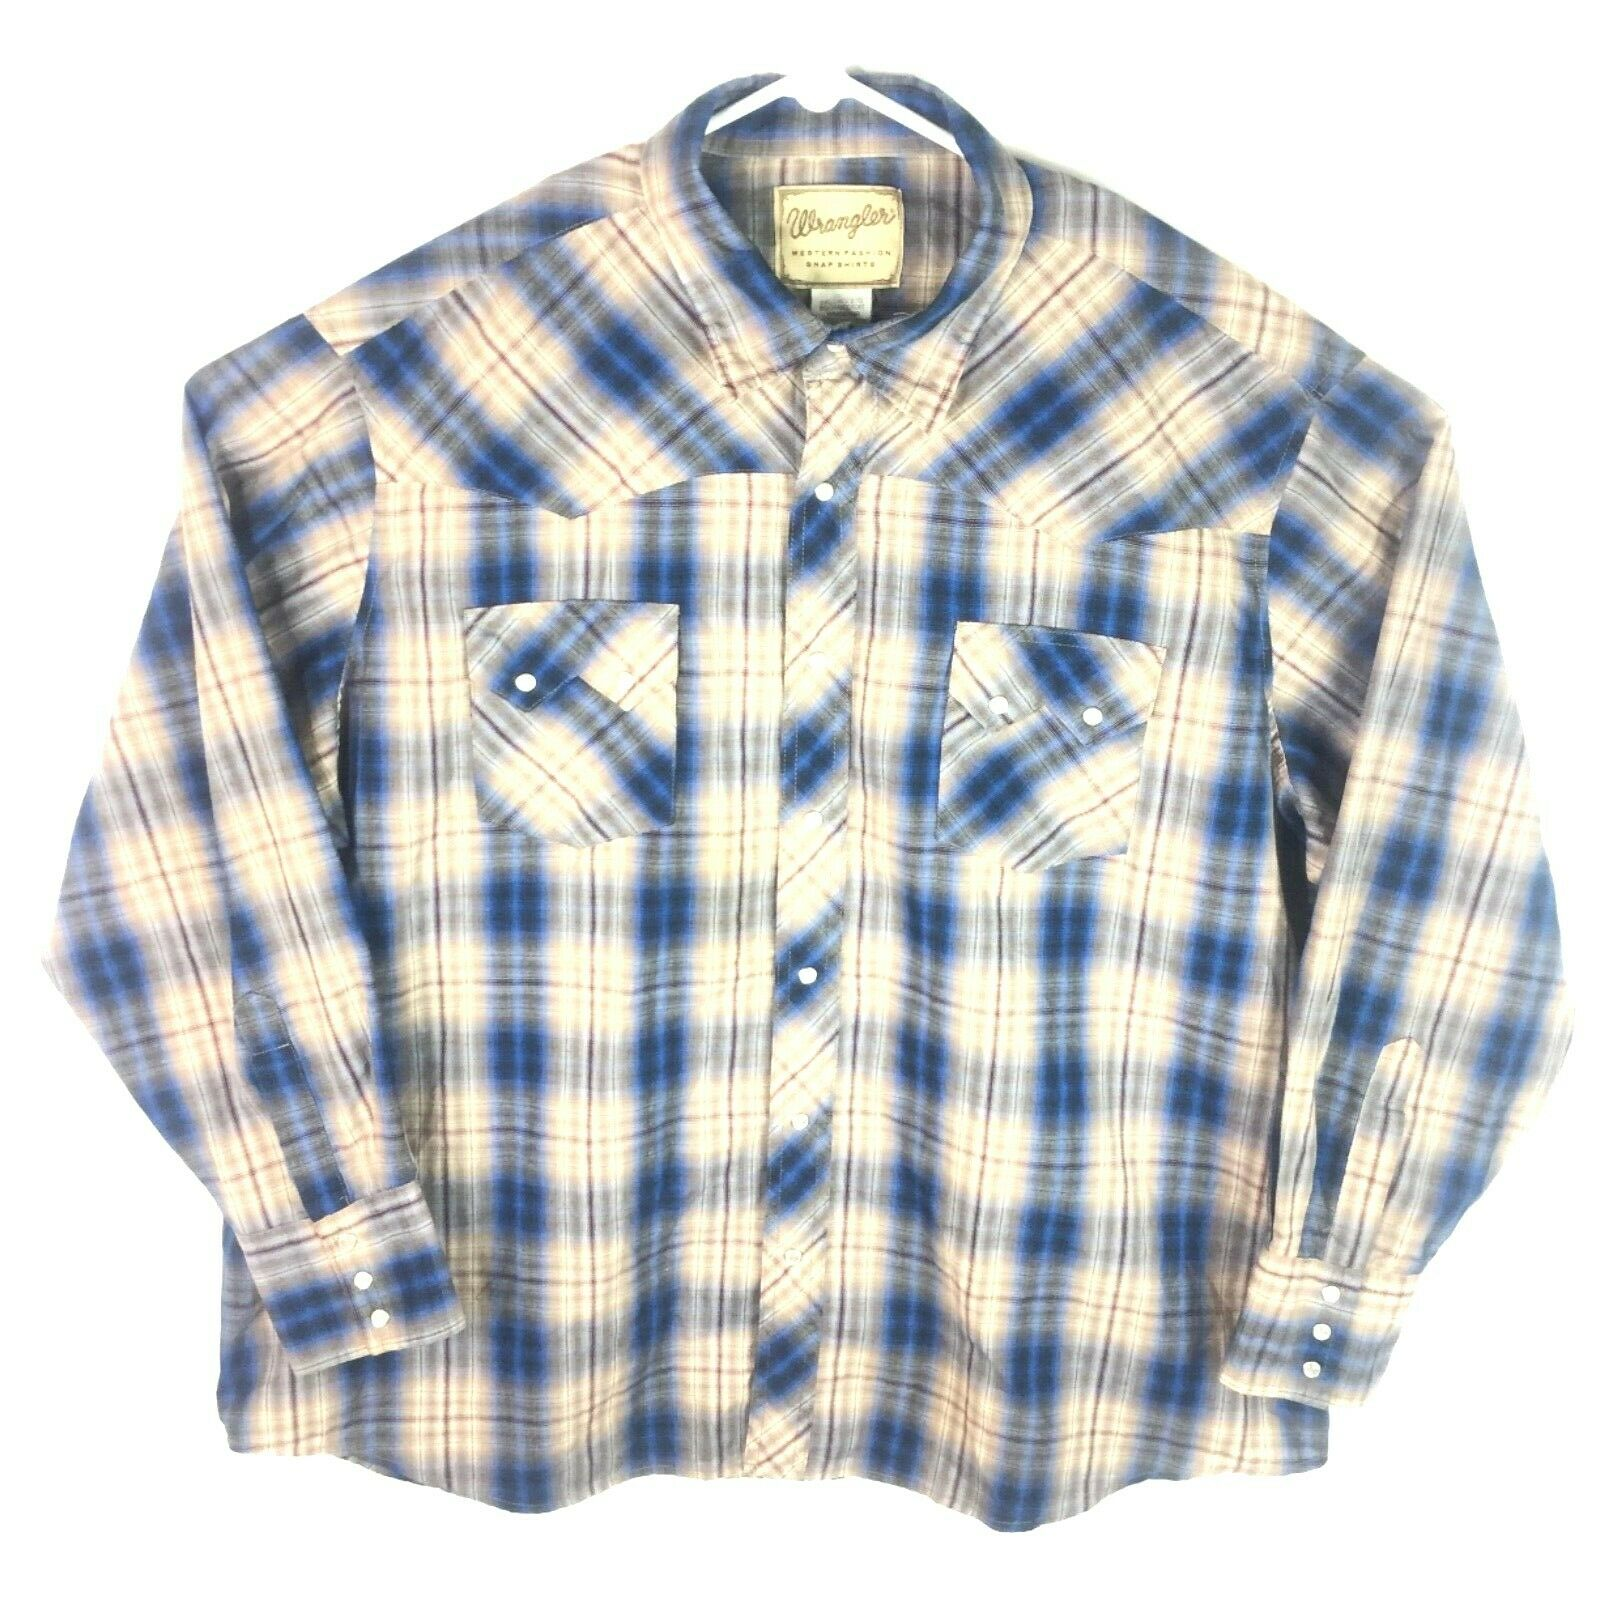 Mens Vintage Pearl Snap Long Sleeve Brown bluee Wrangler Plaid Shirt Size 2XL